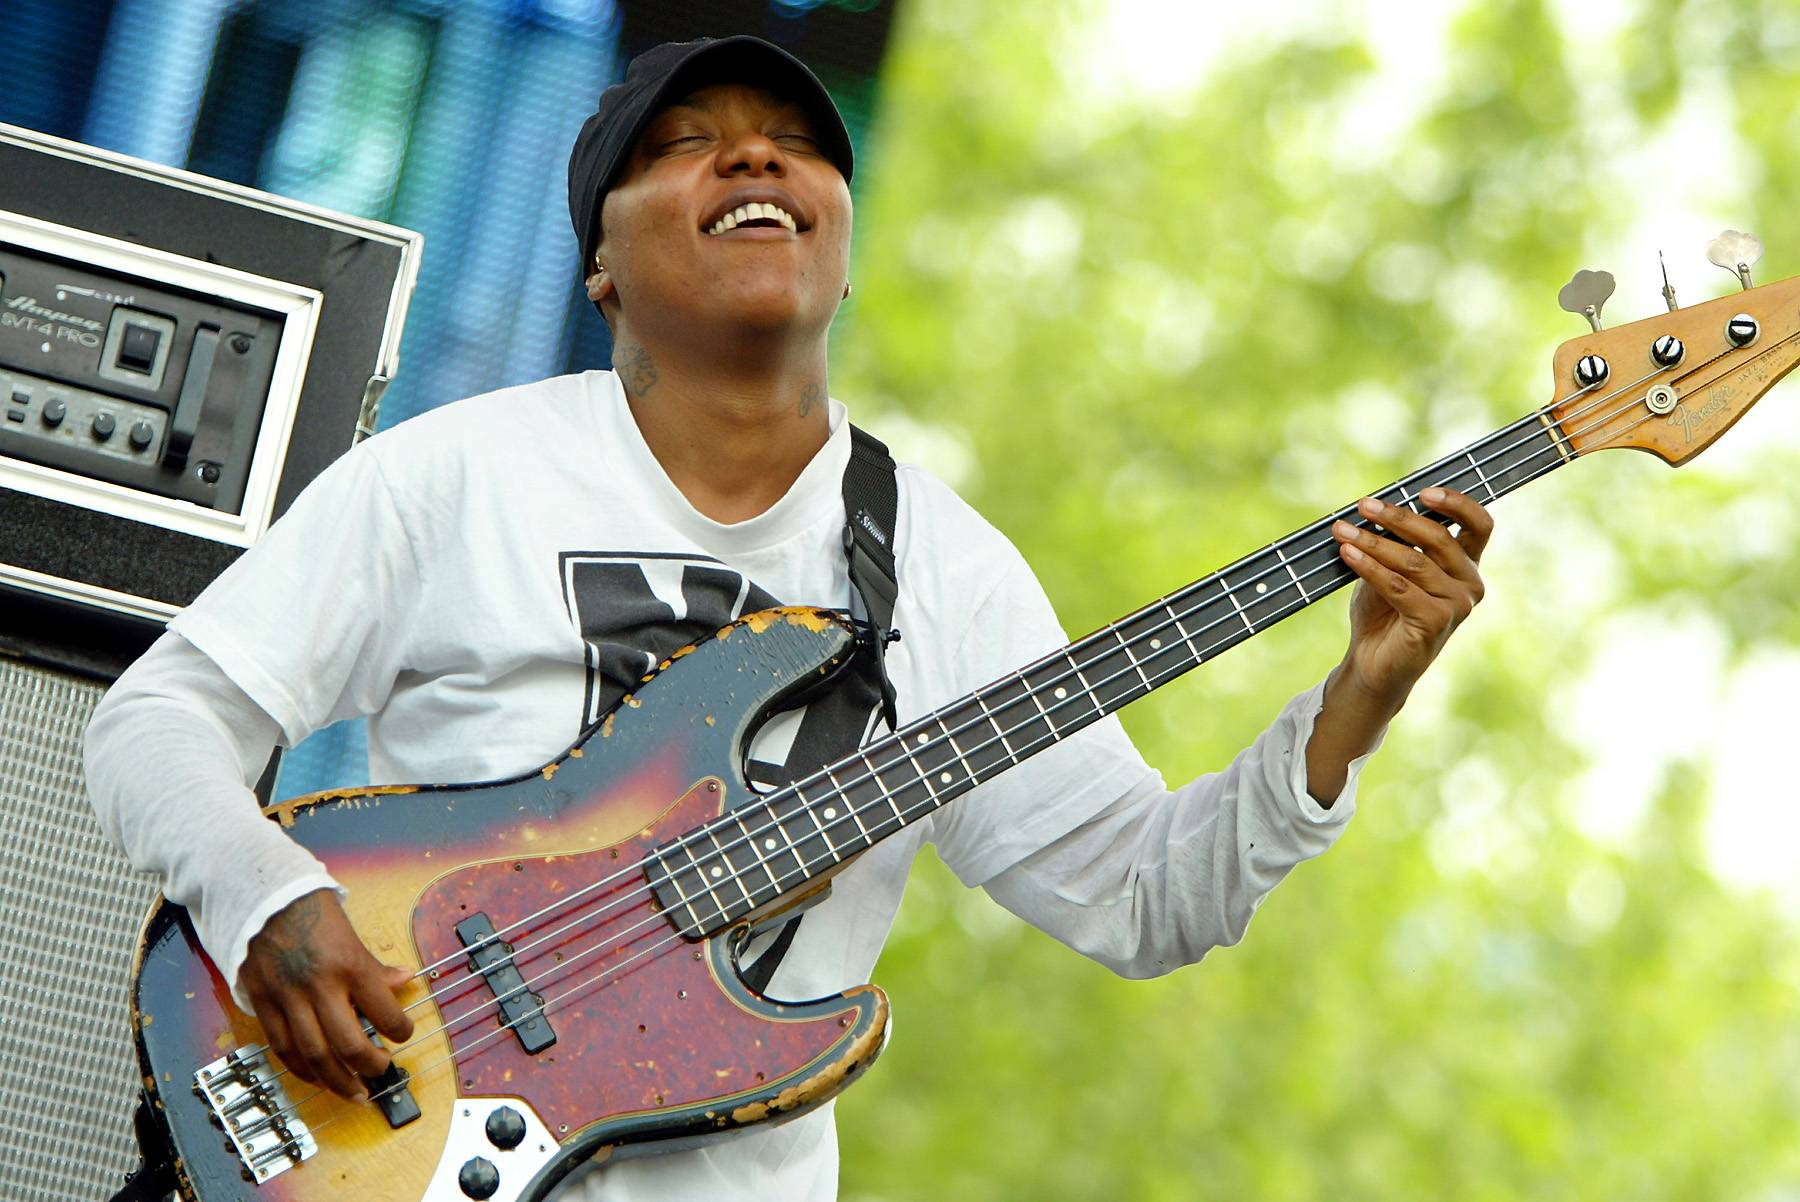 """""""Please Don't Let Me Be Misunderstood"""" - Meshell N'Degeocello - Meshell Ndegeocello sings a stirring rendition of """"Please Don't Let Me Be Misunderstood,"""" which was made popular by Being Mary Jane soundtrack favoriteNina Simone.  (Photo: Scott Gries/Getty Images)"""